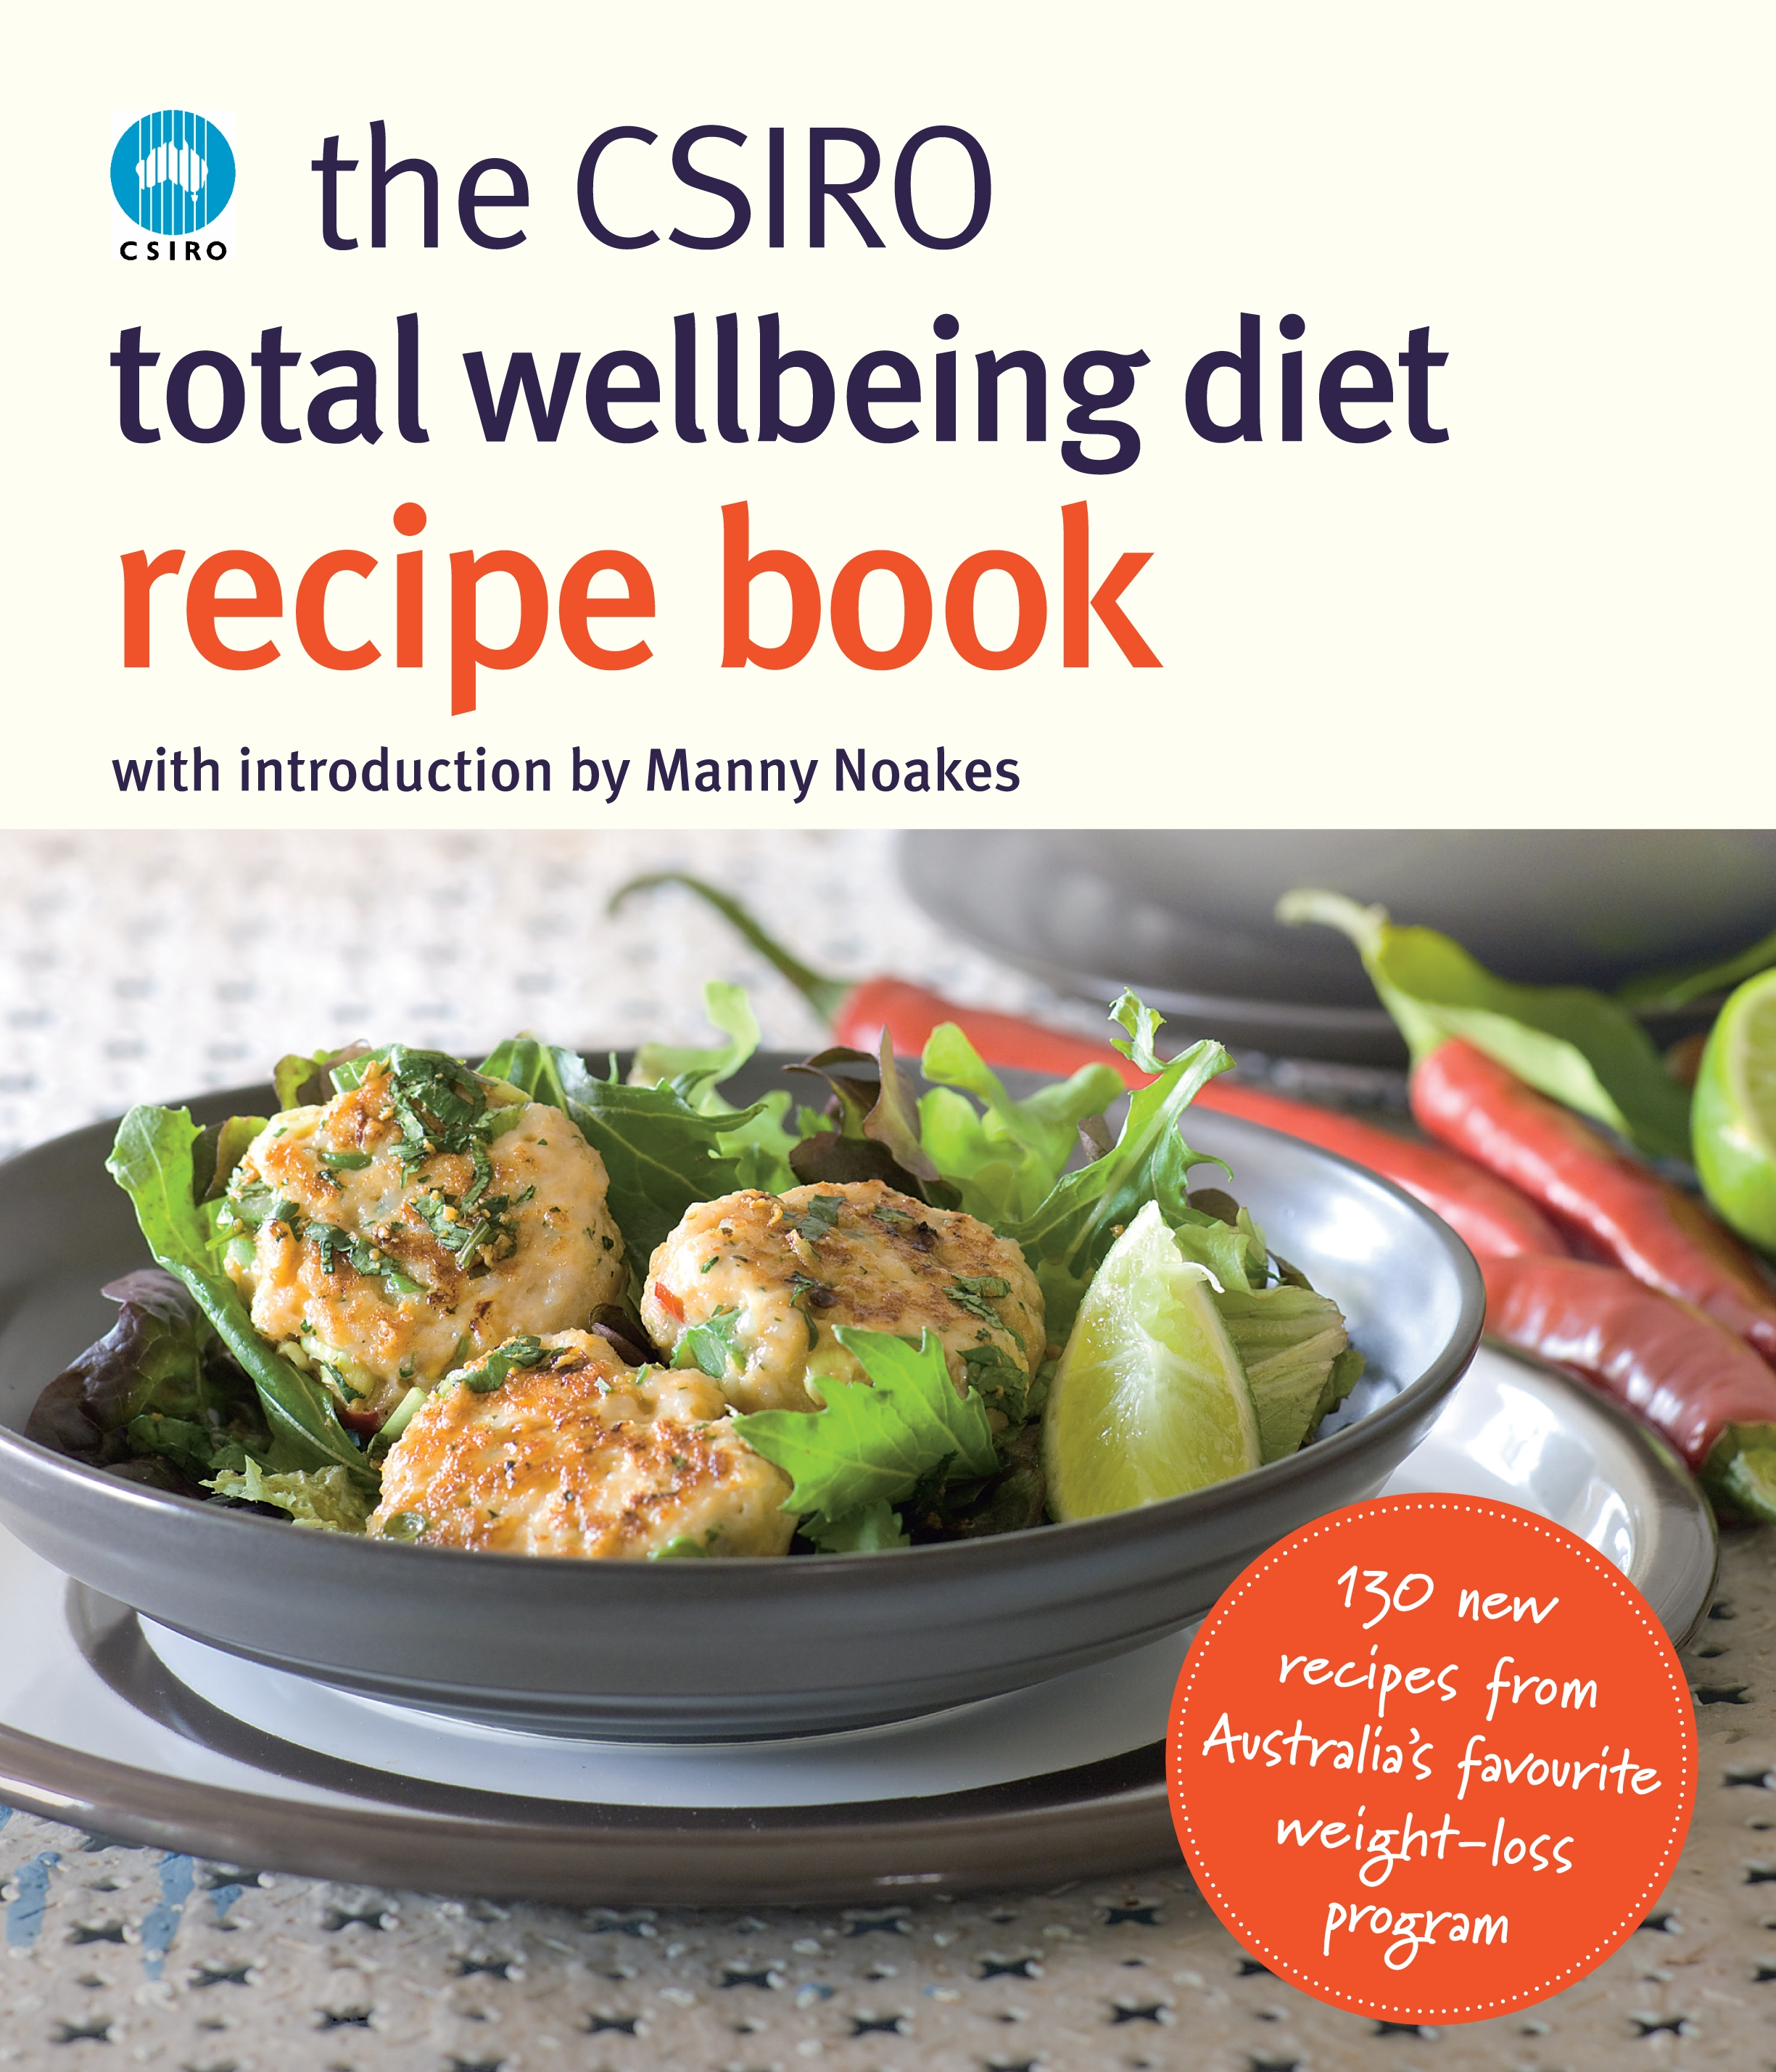 The csiro total wellbeing diet recipe book penguin books australia hi res cover the csiro total wellbeing diet recipe book forumfinder Image collections